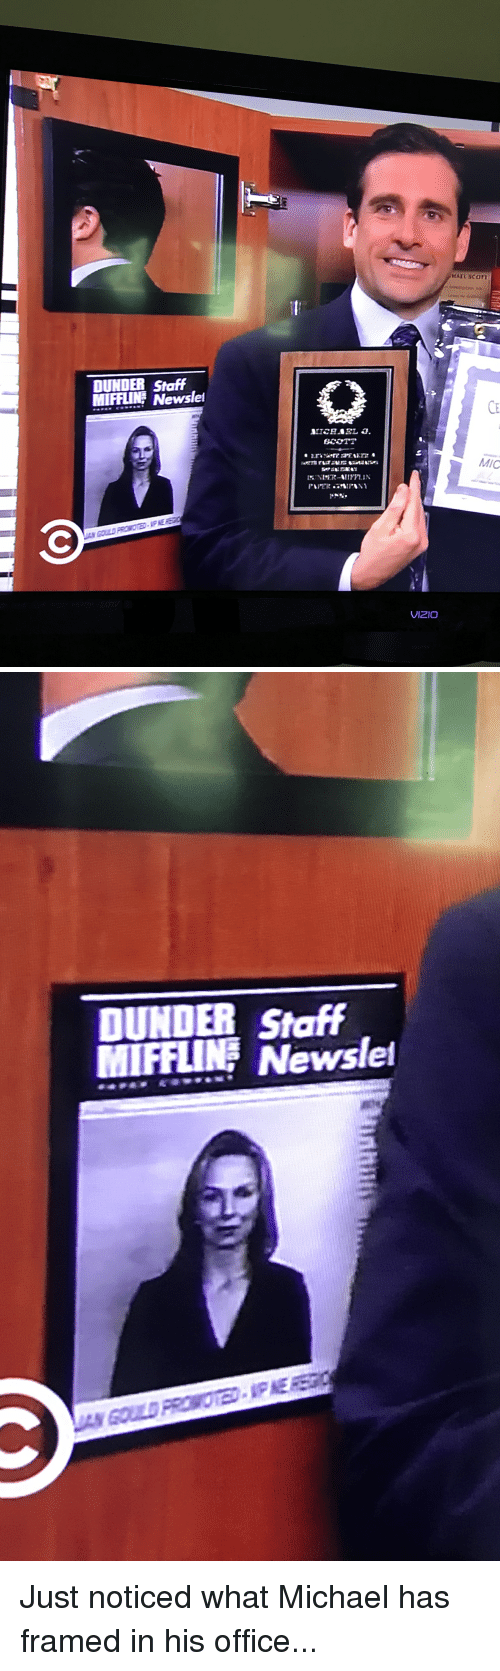 The Office, Michael, and Office: HAEL SCOm  DUNDER Staff  MİFFLINE Newslel  CE  MIC  VIzio   DUNDER Staff  MIFFLINE Newslel Just noticed what Michael has framed in his office...